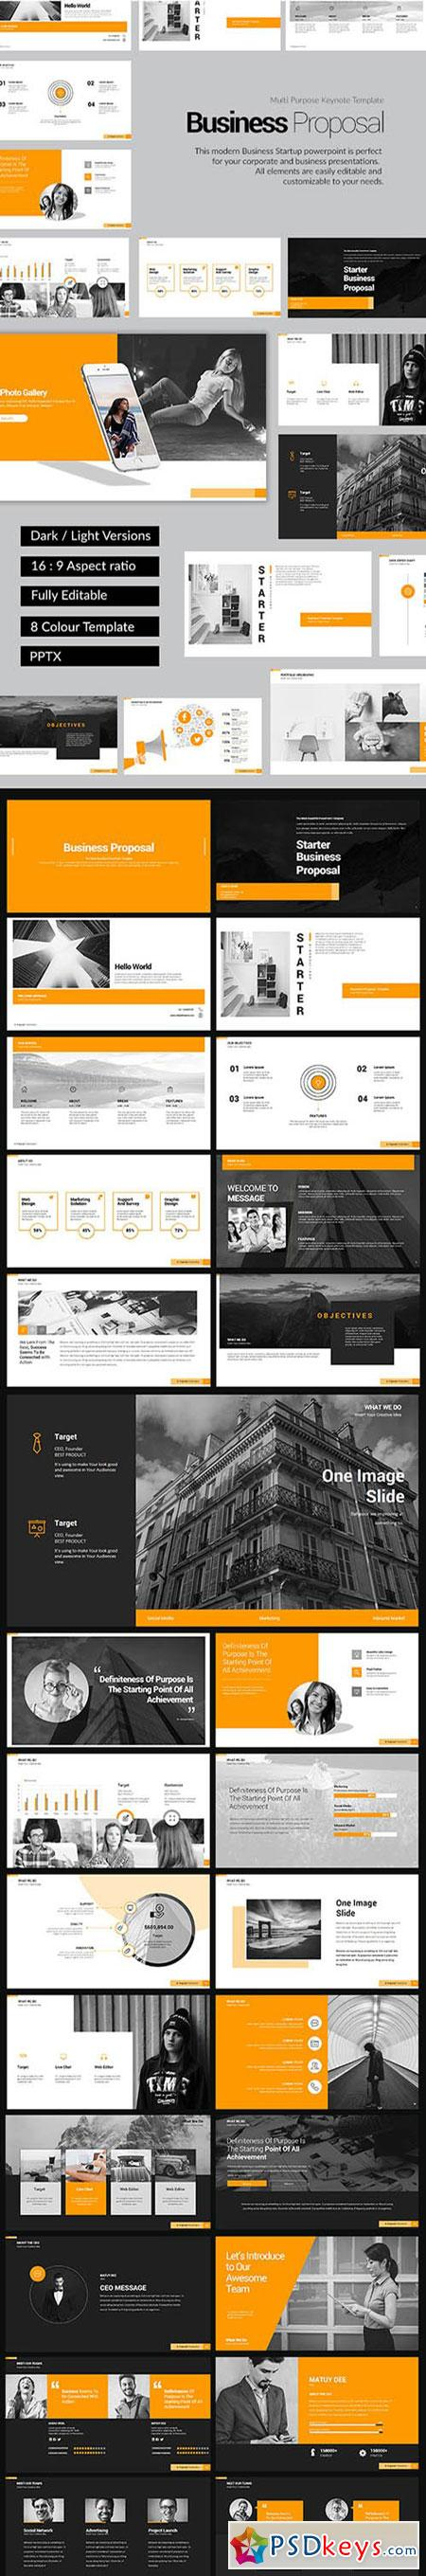 Business Proposal PowerPoint Template 19321690